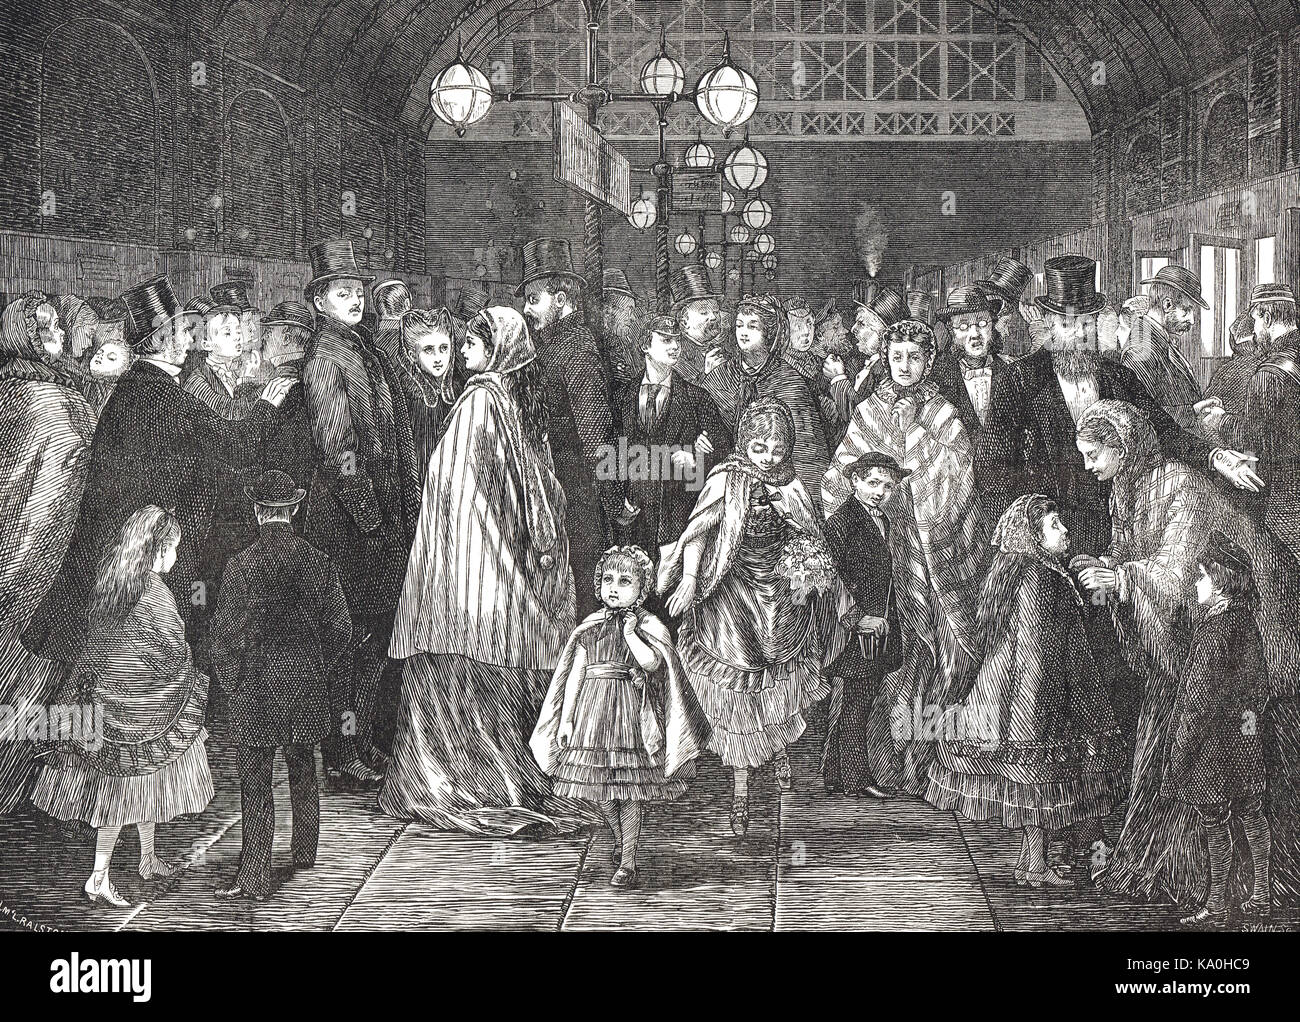 The Last train after the Pantomime, 1871 - Stock Image